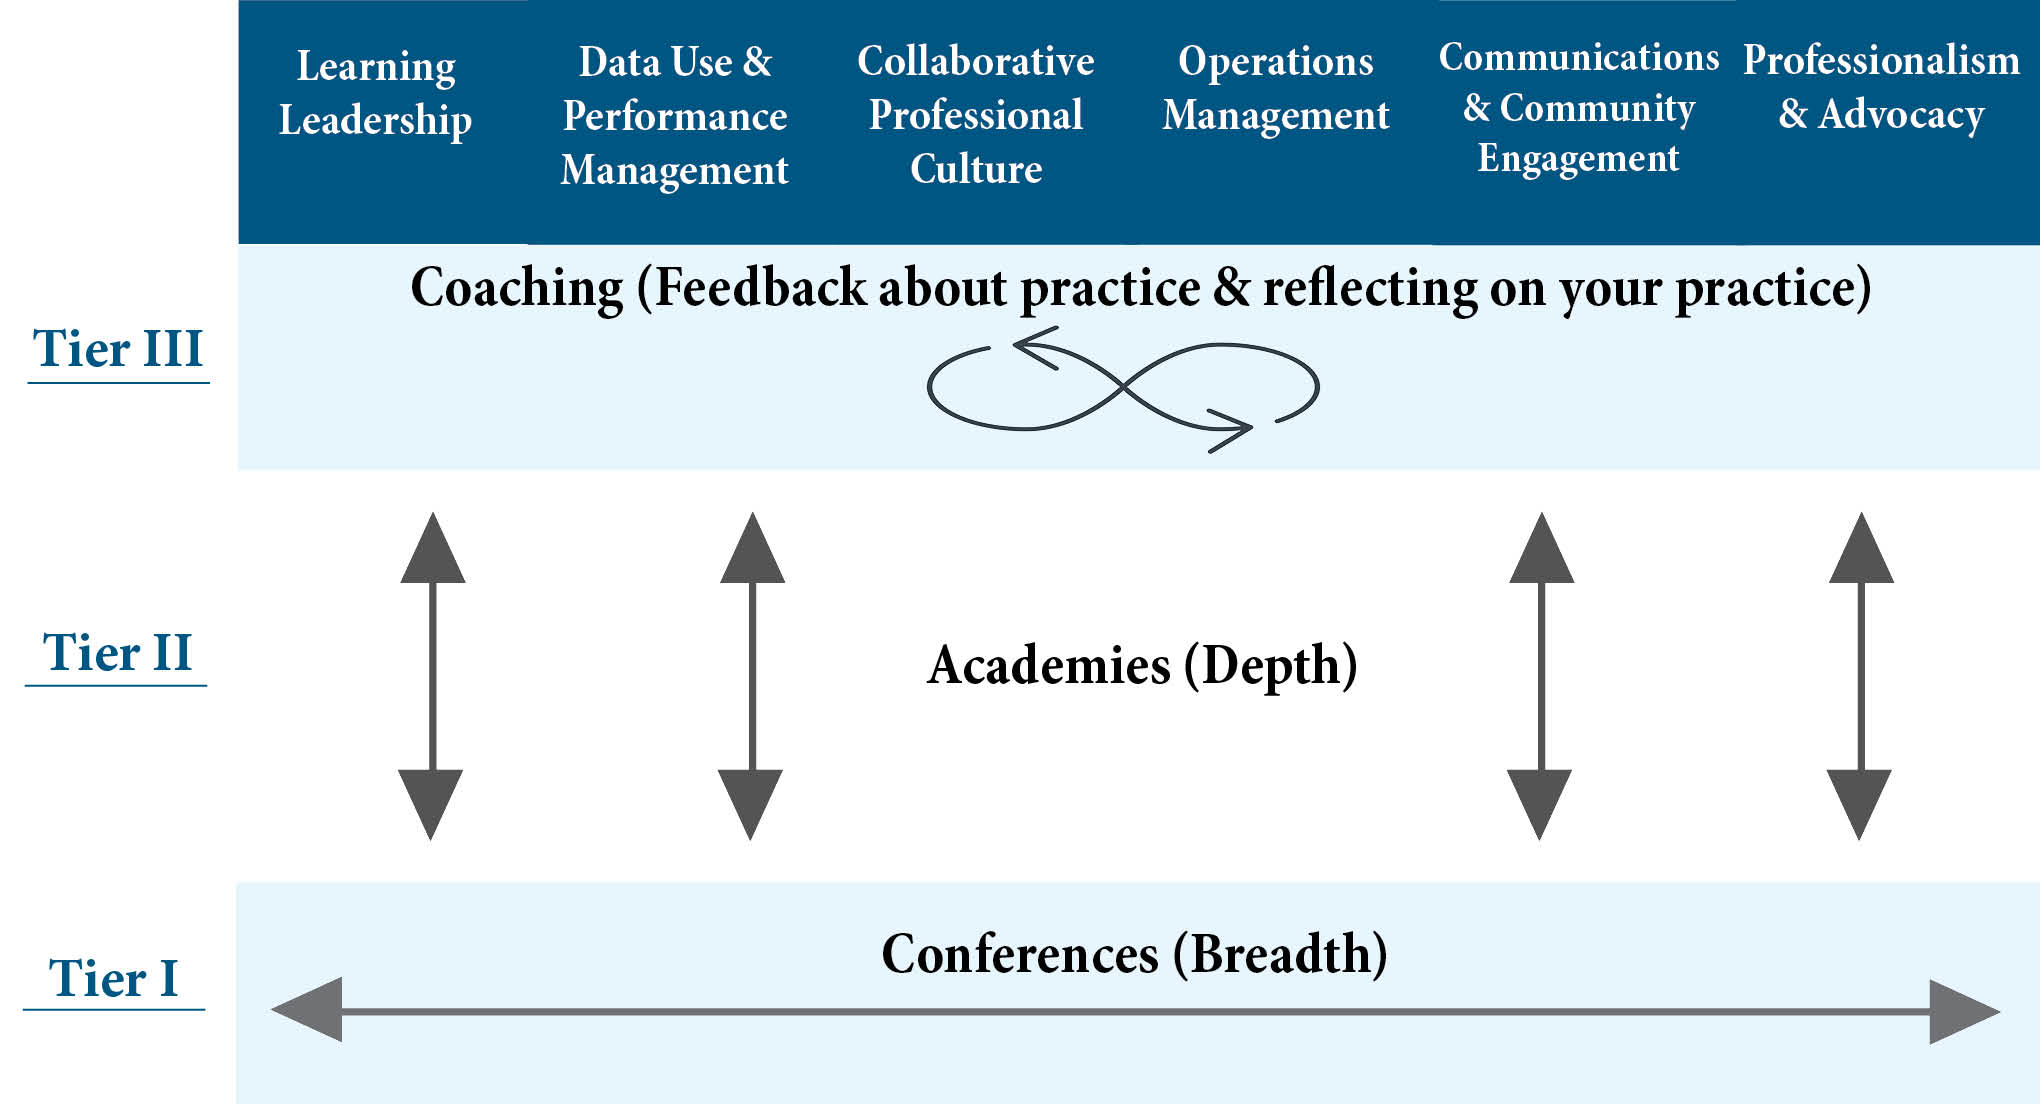 PD Table with three tiers conferences, academies and coaching shown in a chart